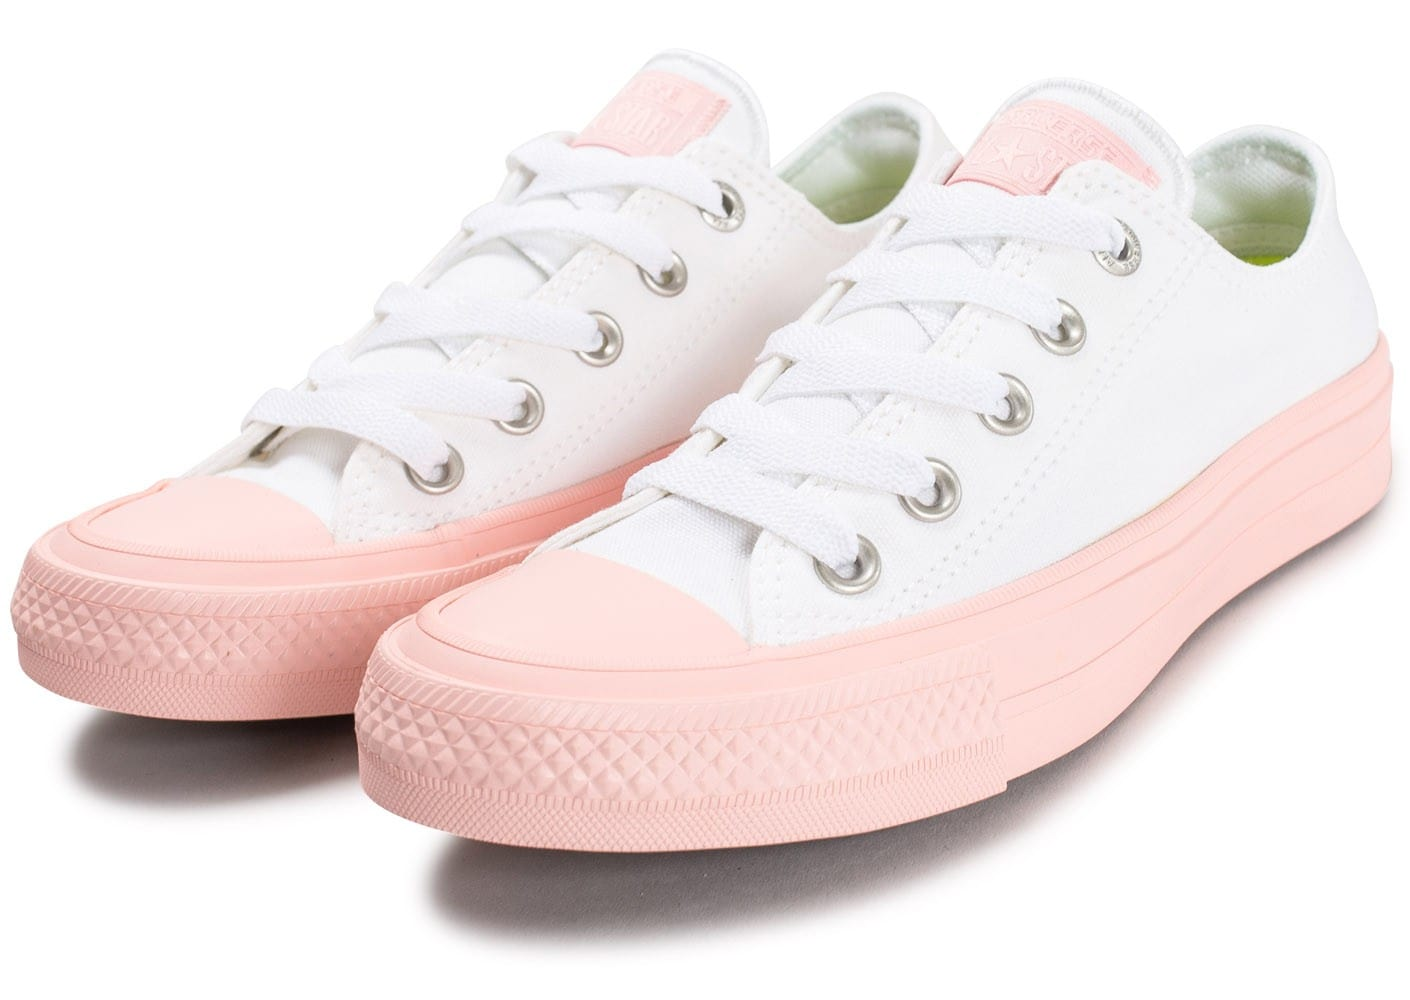 converse chuck taylor all star 2 ox w blanche et rose chaussures femme chausport. Black Bedroom Furniture Sets. Home Design Ideas